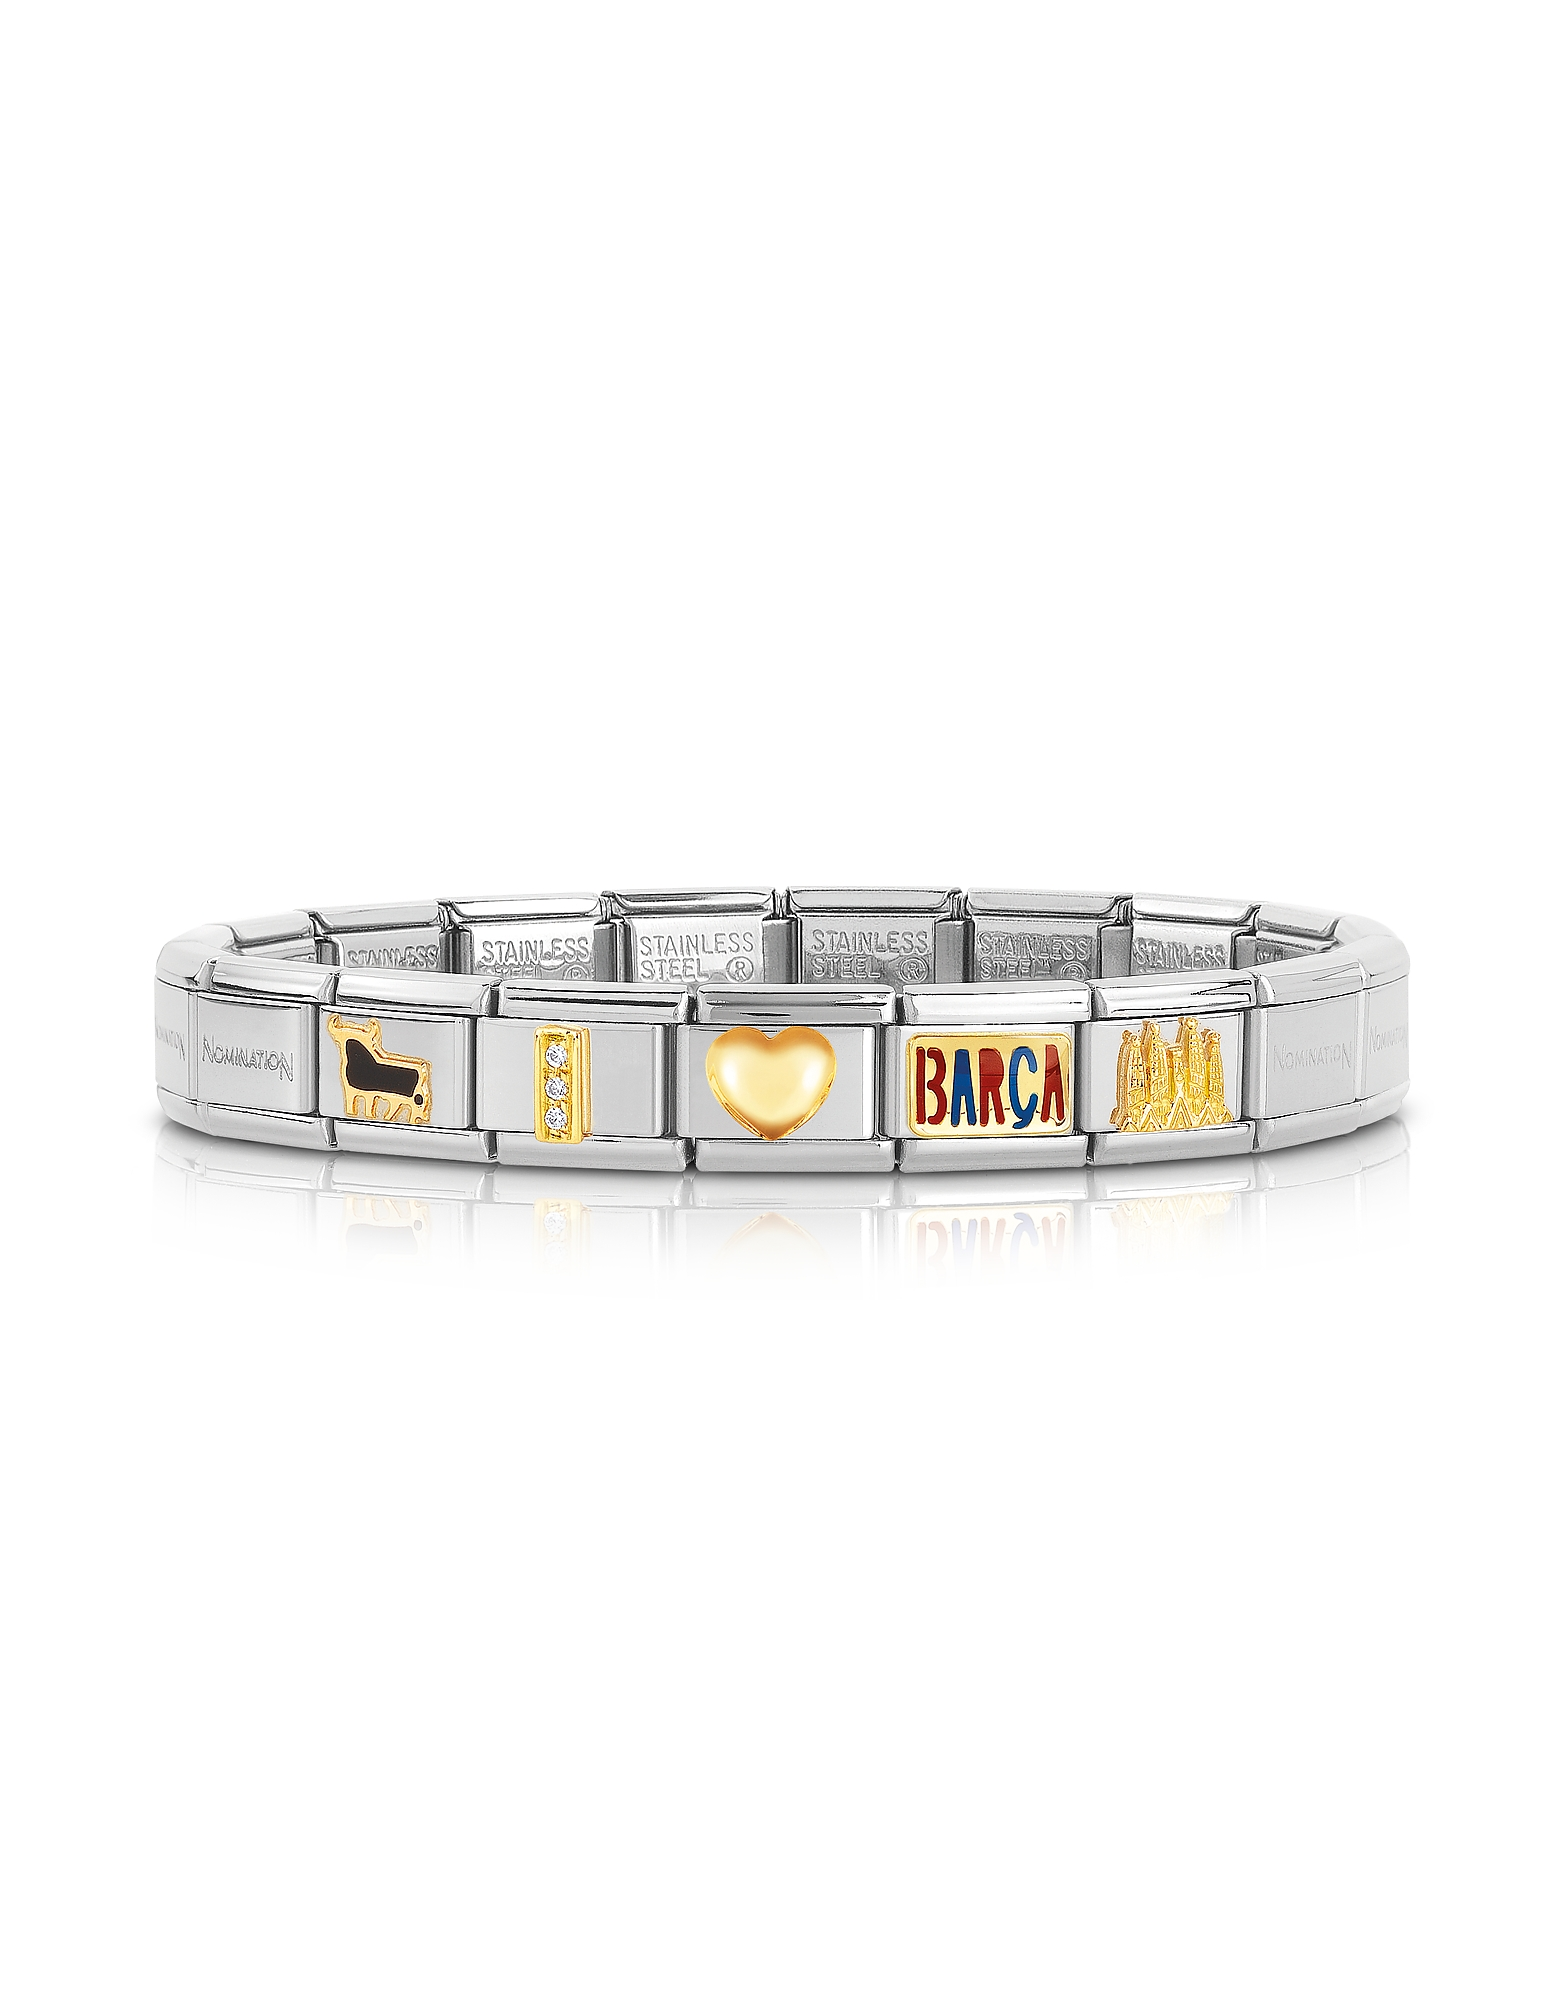 Nomination Bracelets, Classic I Love Barca Gold and Stainless Steel Bracelet